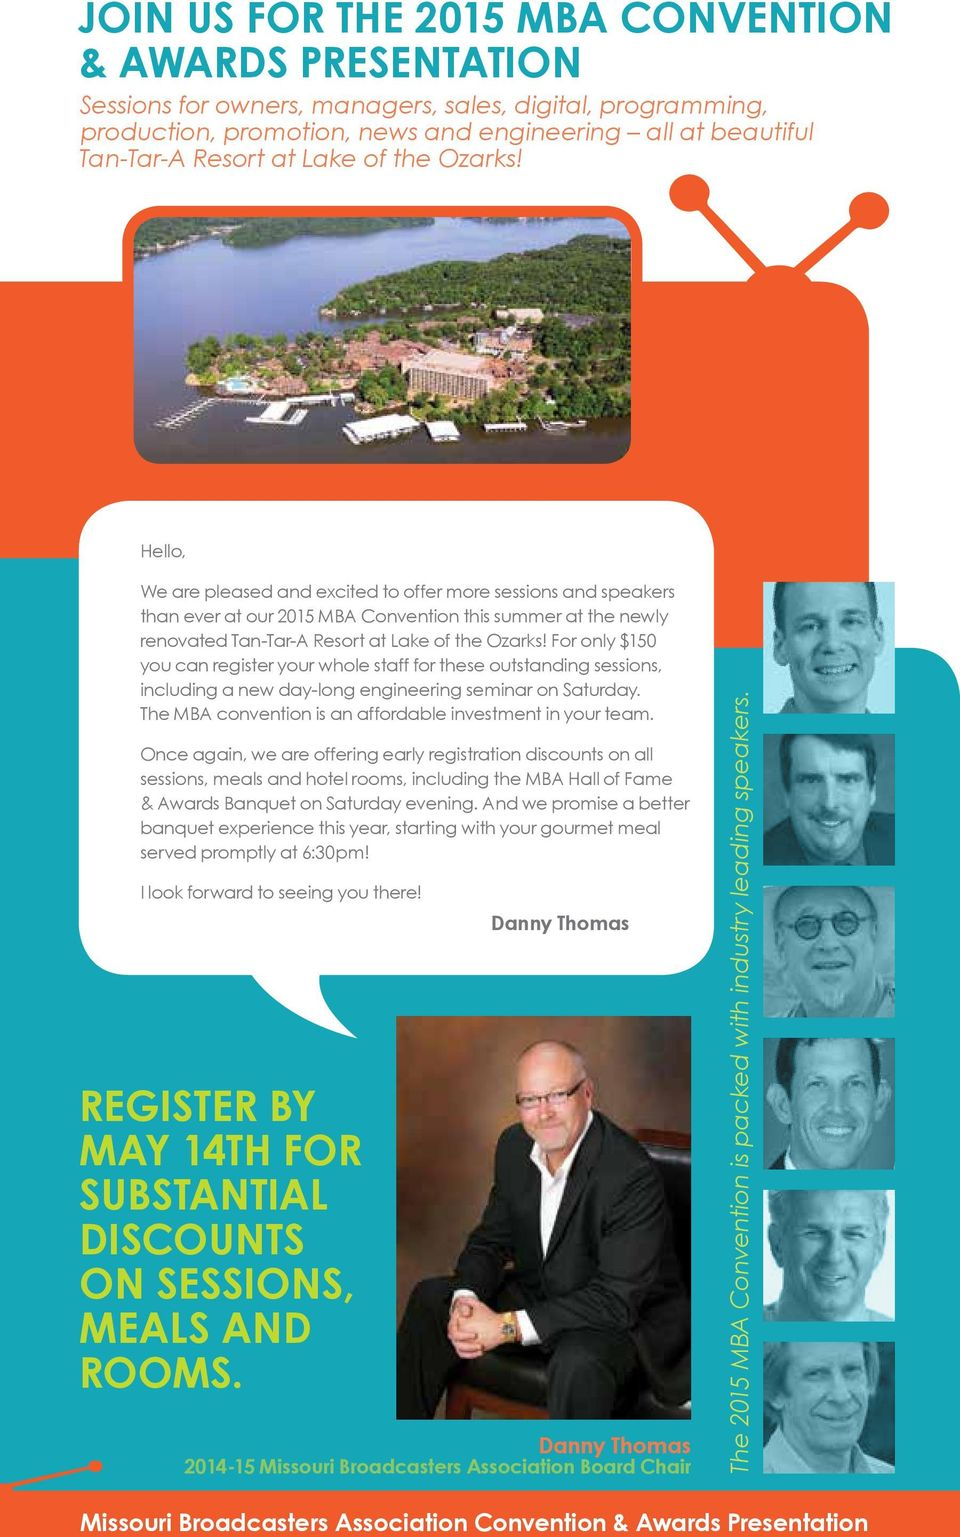 Hello, We are pleased and excited to offer more sessions and speakers than ever at our 2015 MBA Convention this summer at the newly renovated Tan-Tar-A Resort at Lake of the Ozarks!